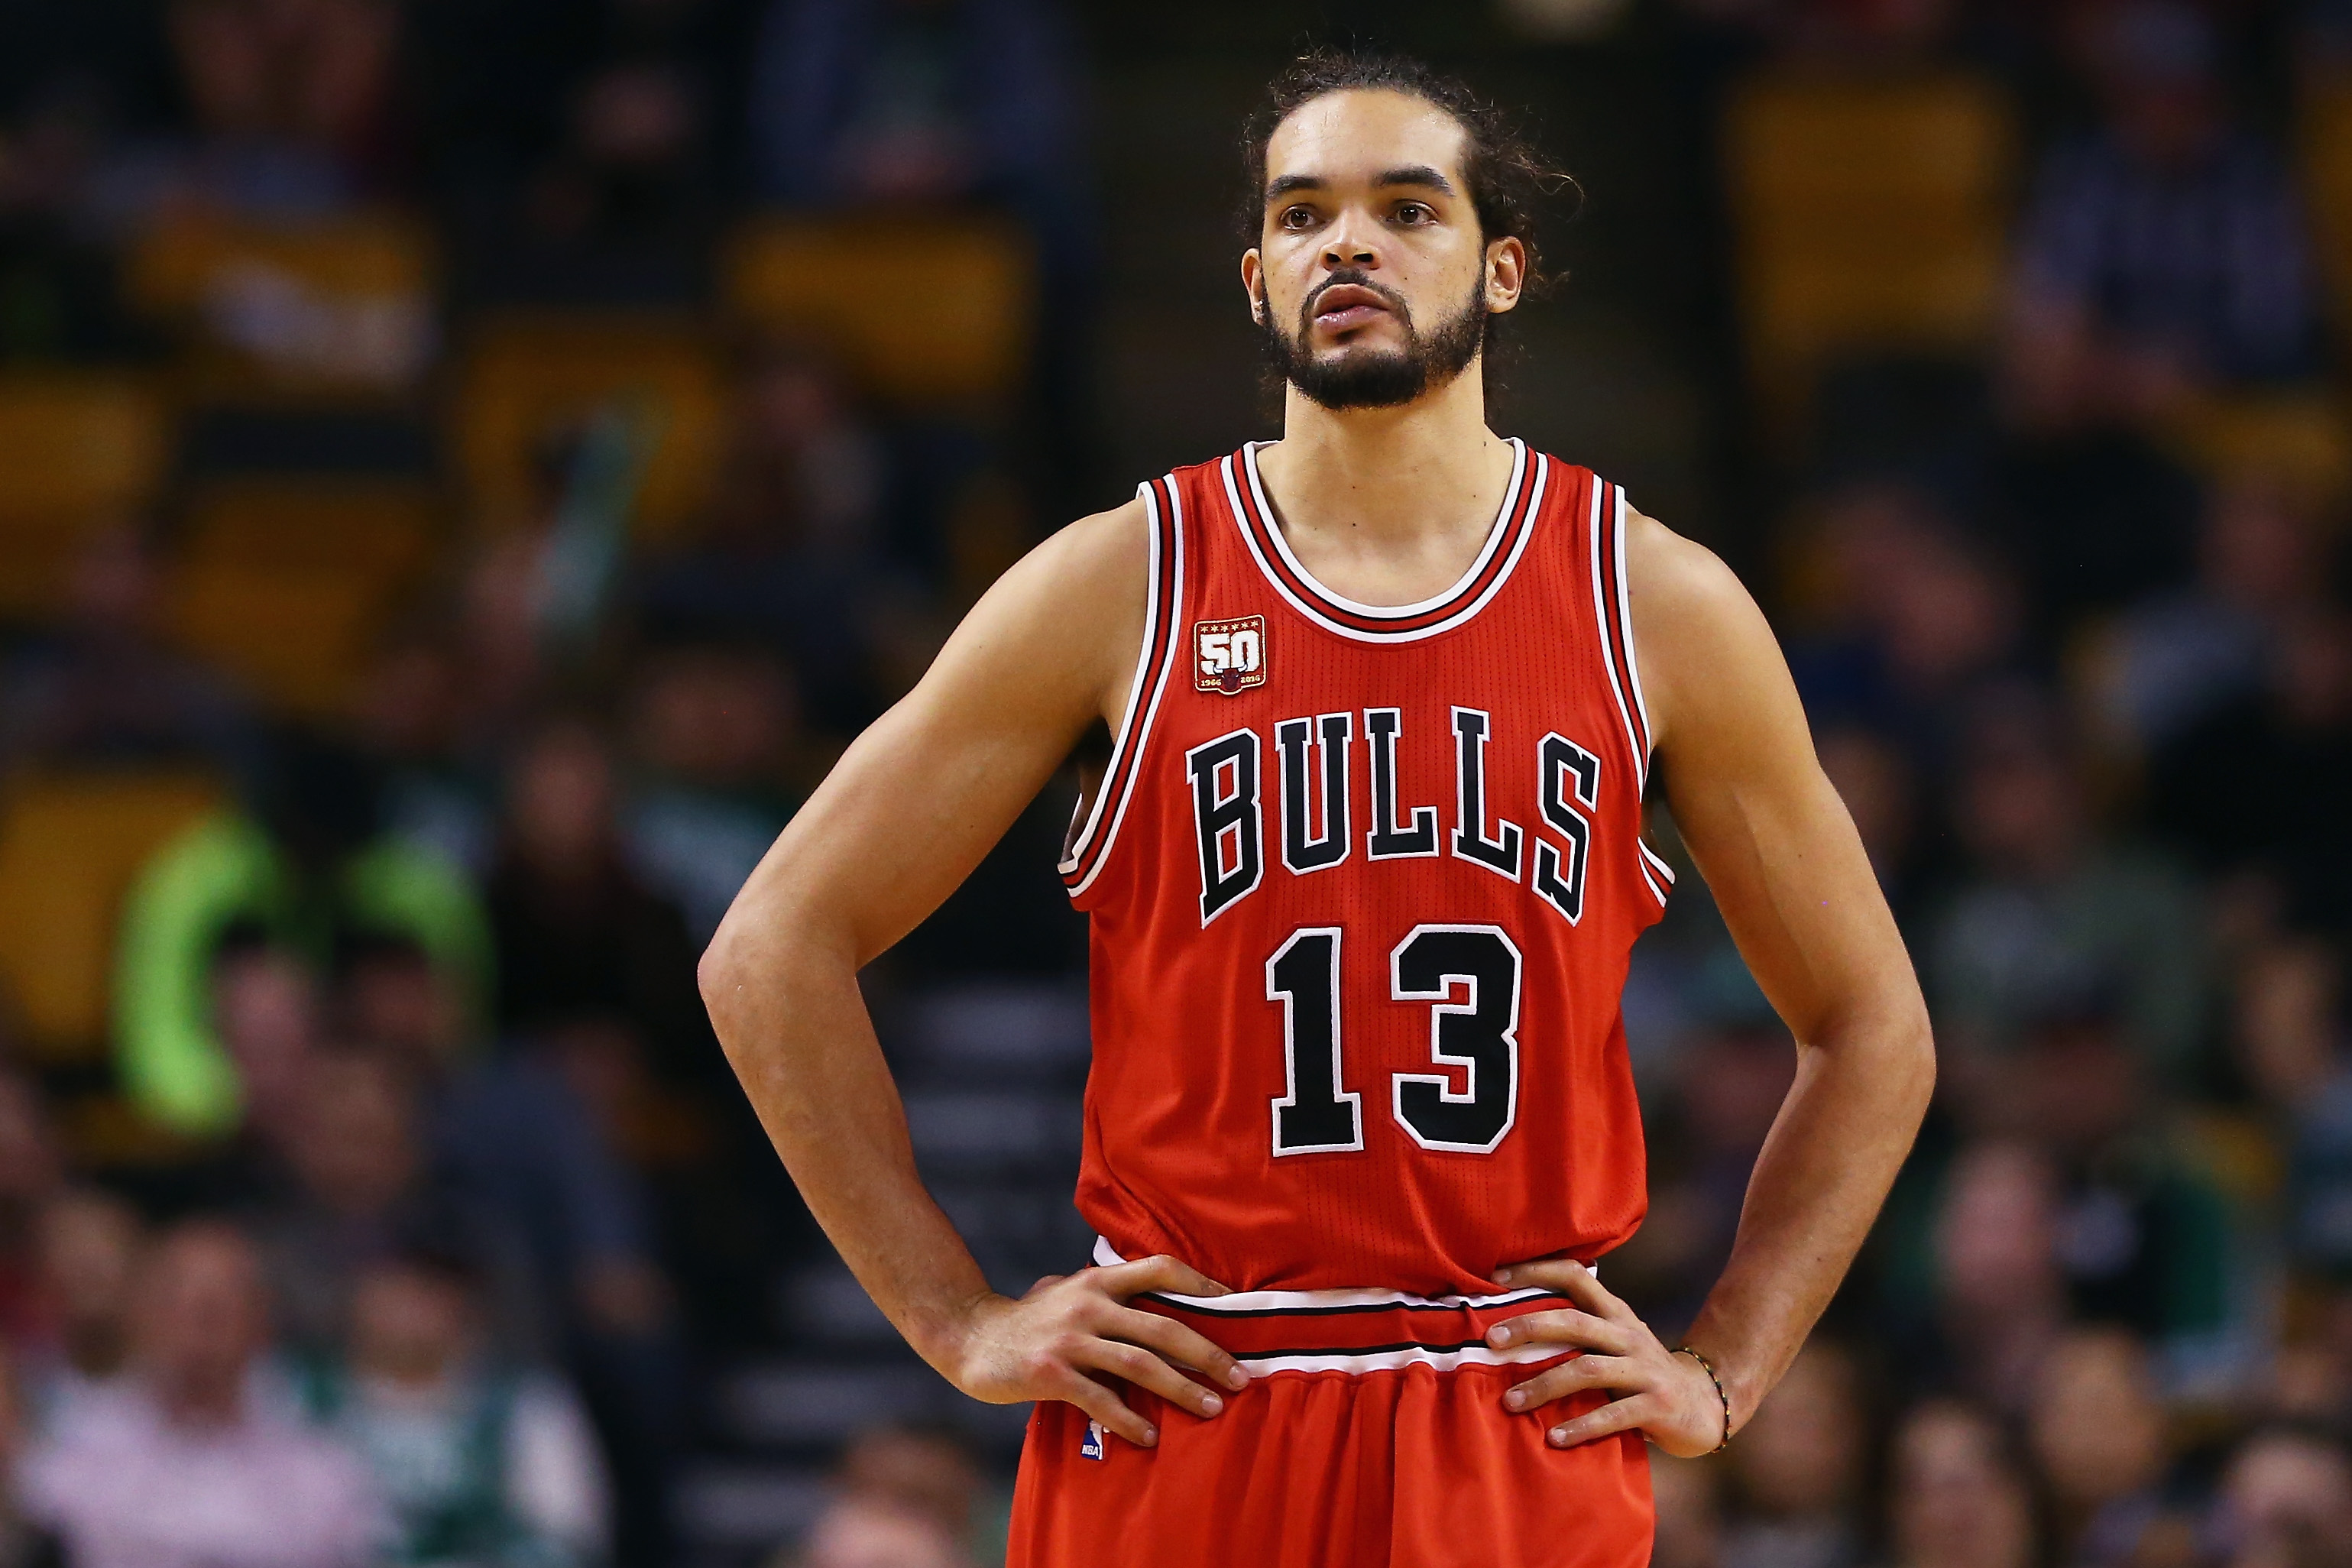 BOSTON, MA - DECEMBER 09: Joakim Noah #13 of the Chicago Bulls looks on during the second half against the Boston Celtics at TD Garden on December 9, 2015 in Boston, Massachusetts. The Celtics defeat the Bulls 105-100.   Maddie Meyer/Getty Images/AFP